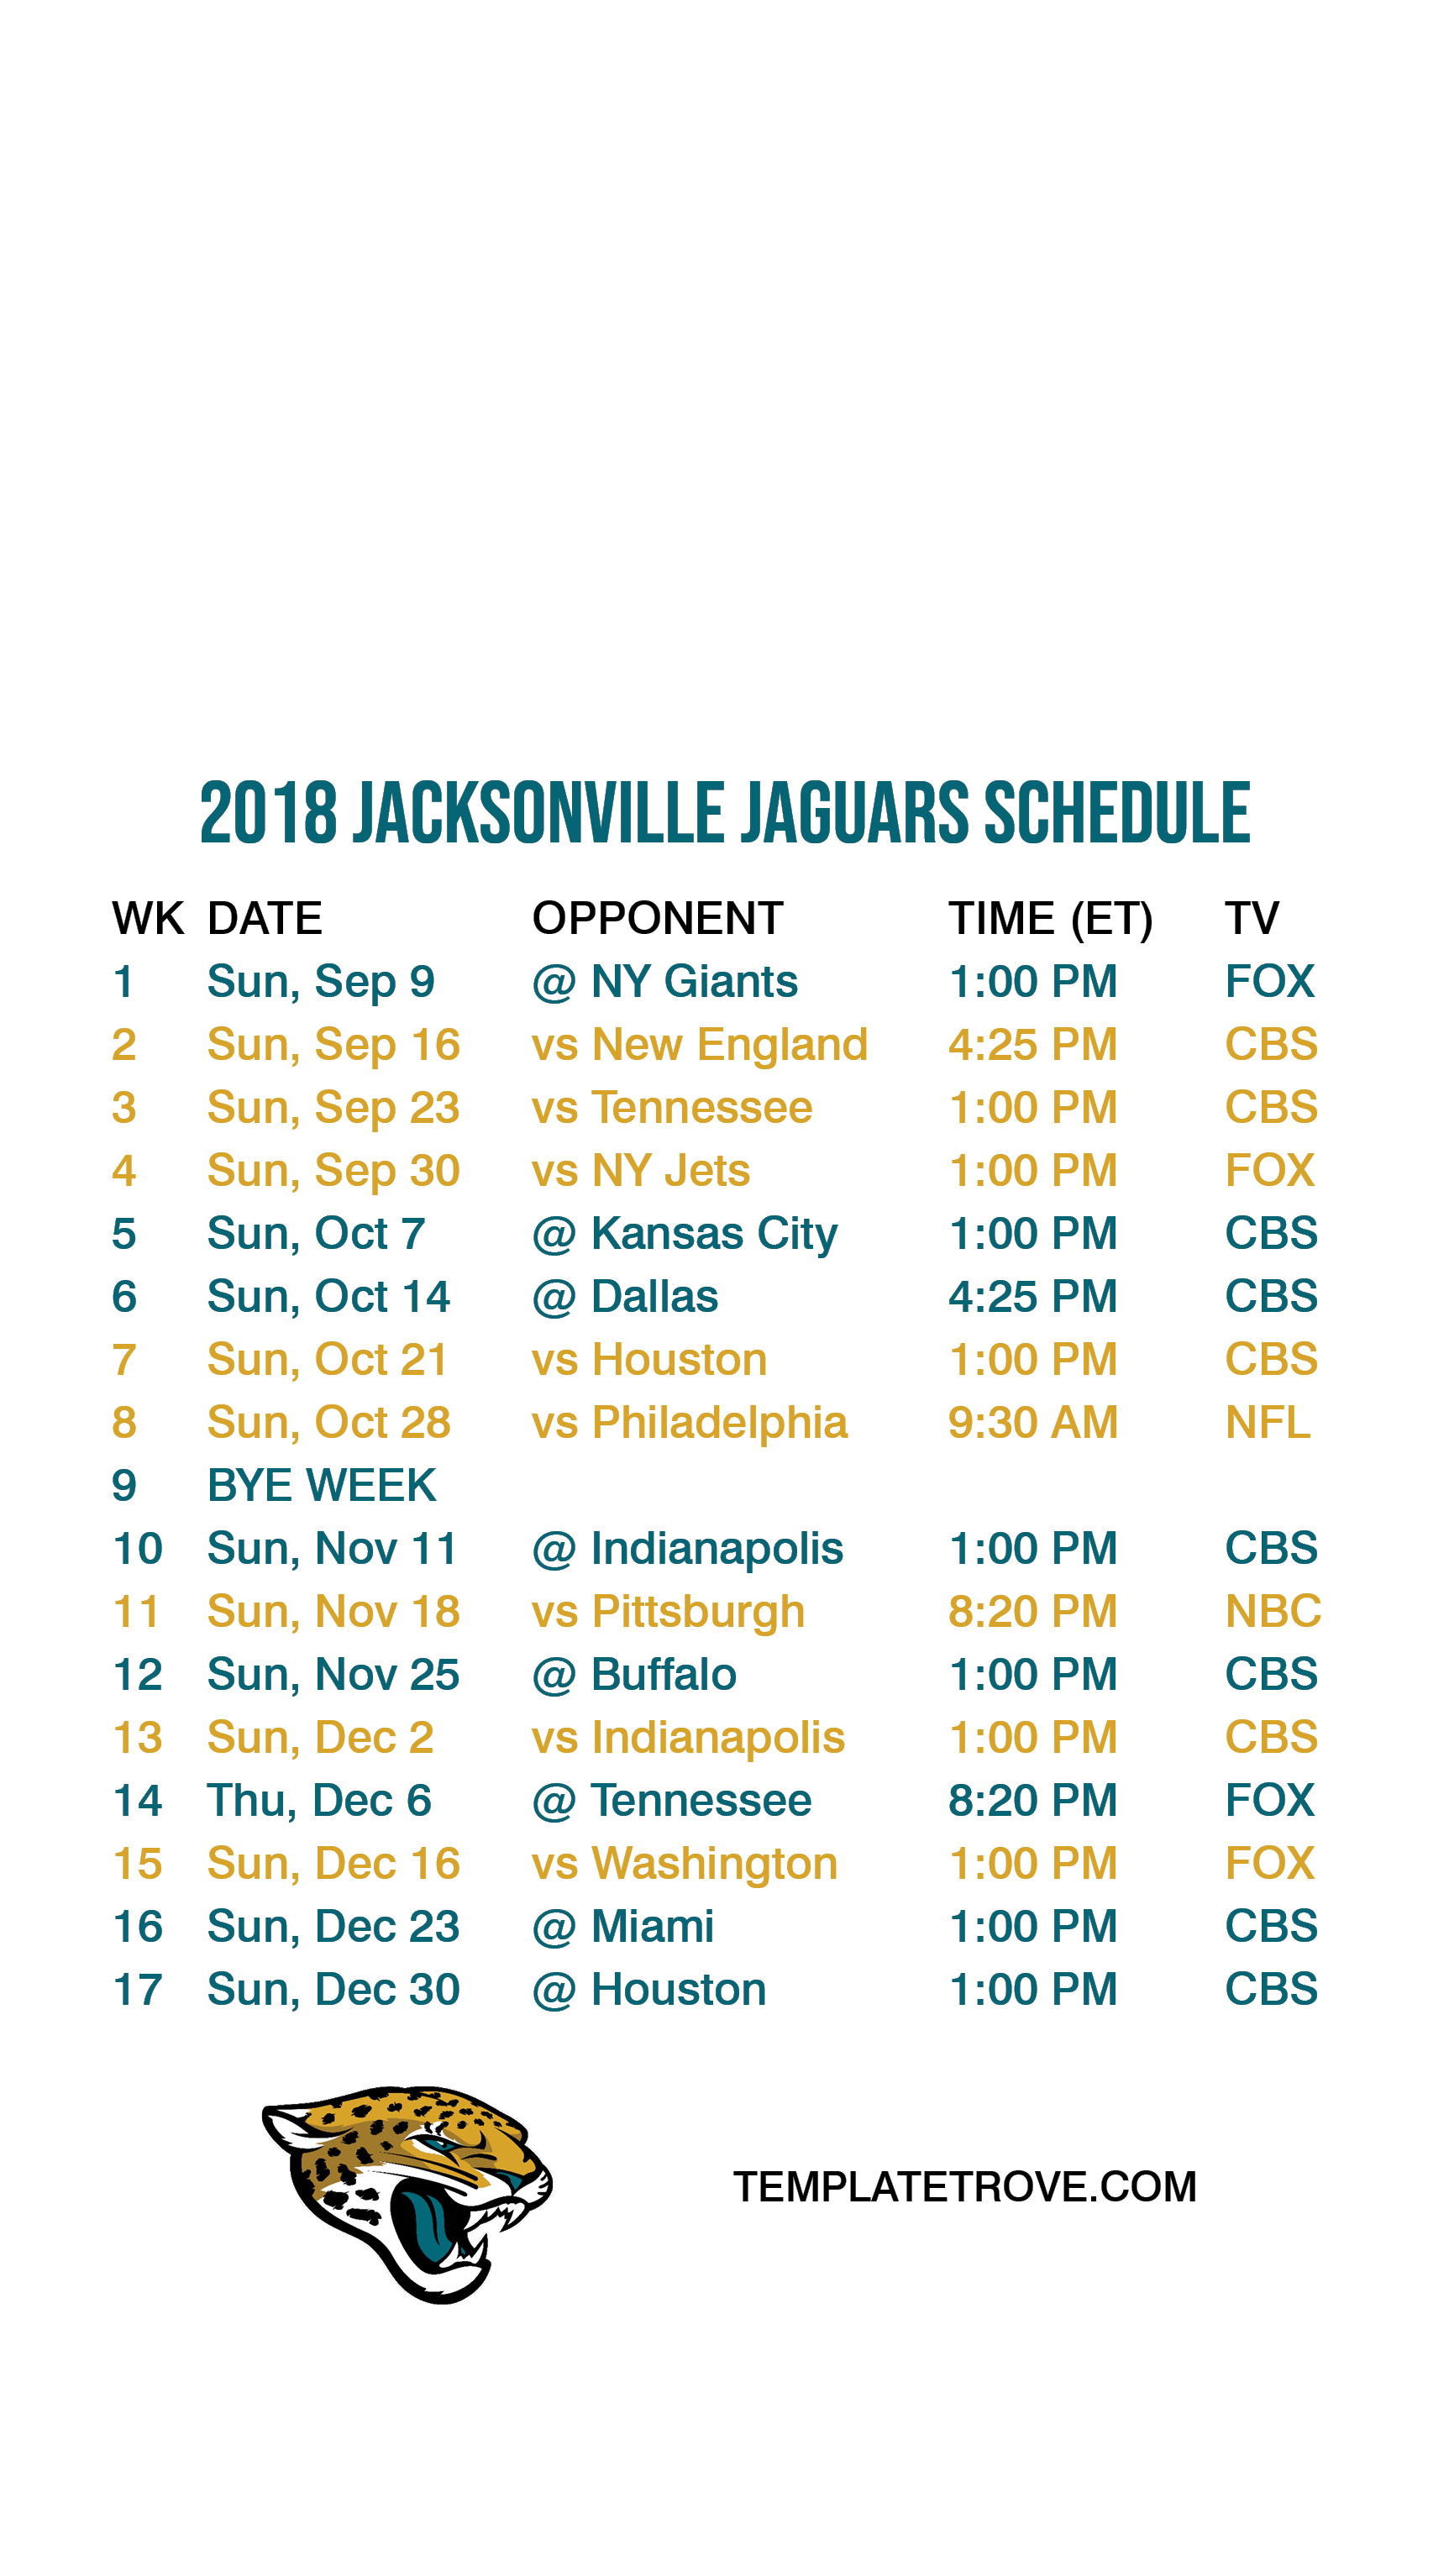 2018 2019 Jacksonville Jaguars Lock Screen Schedule for iPhone 6 7 1725x3067